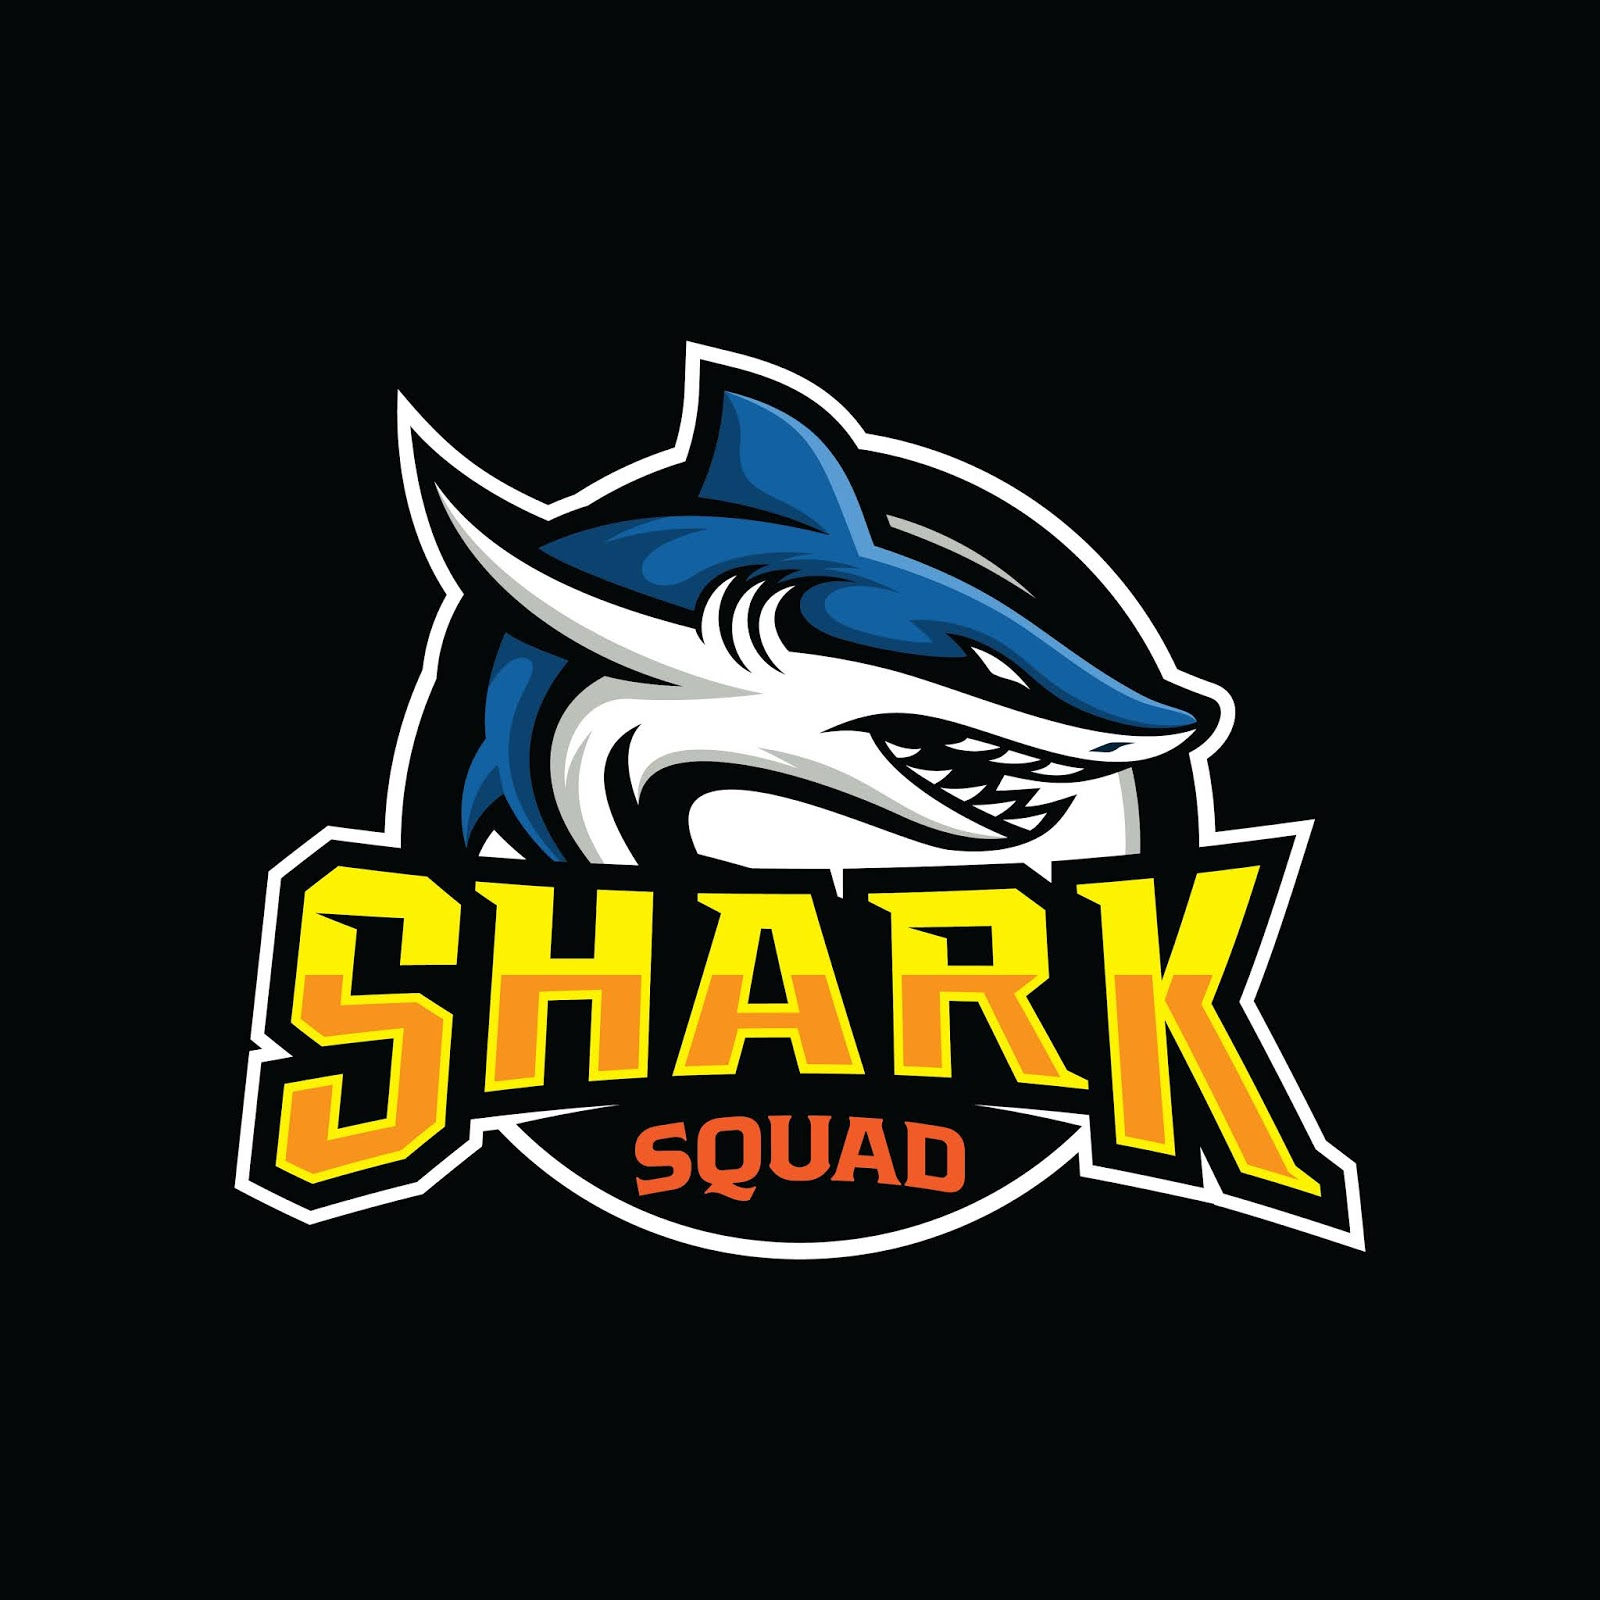 Shark Esport Gaming Mascot Shield Free Download Vector CDR, AI, EPS and PNG Formats